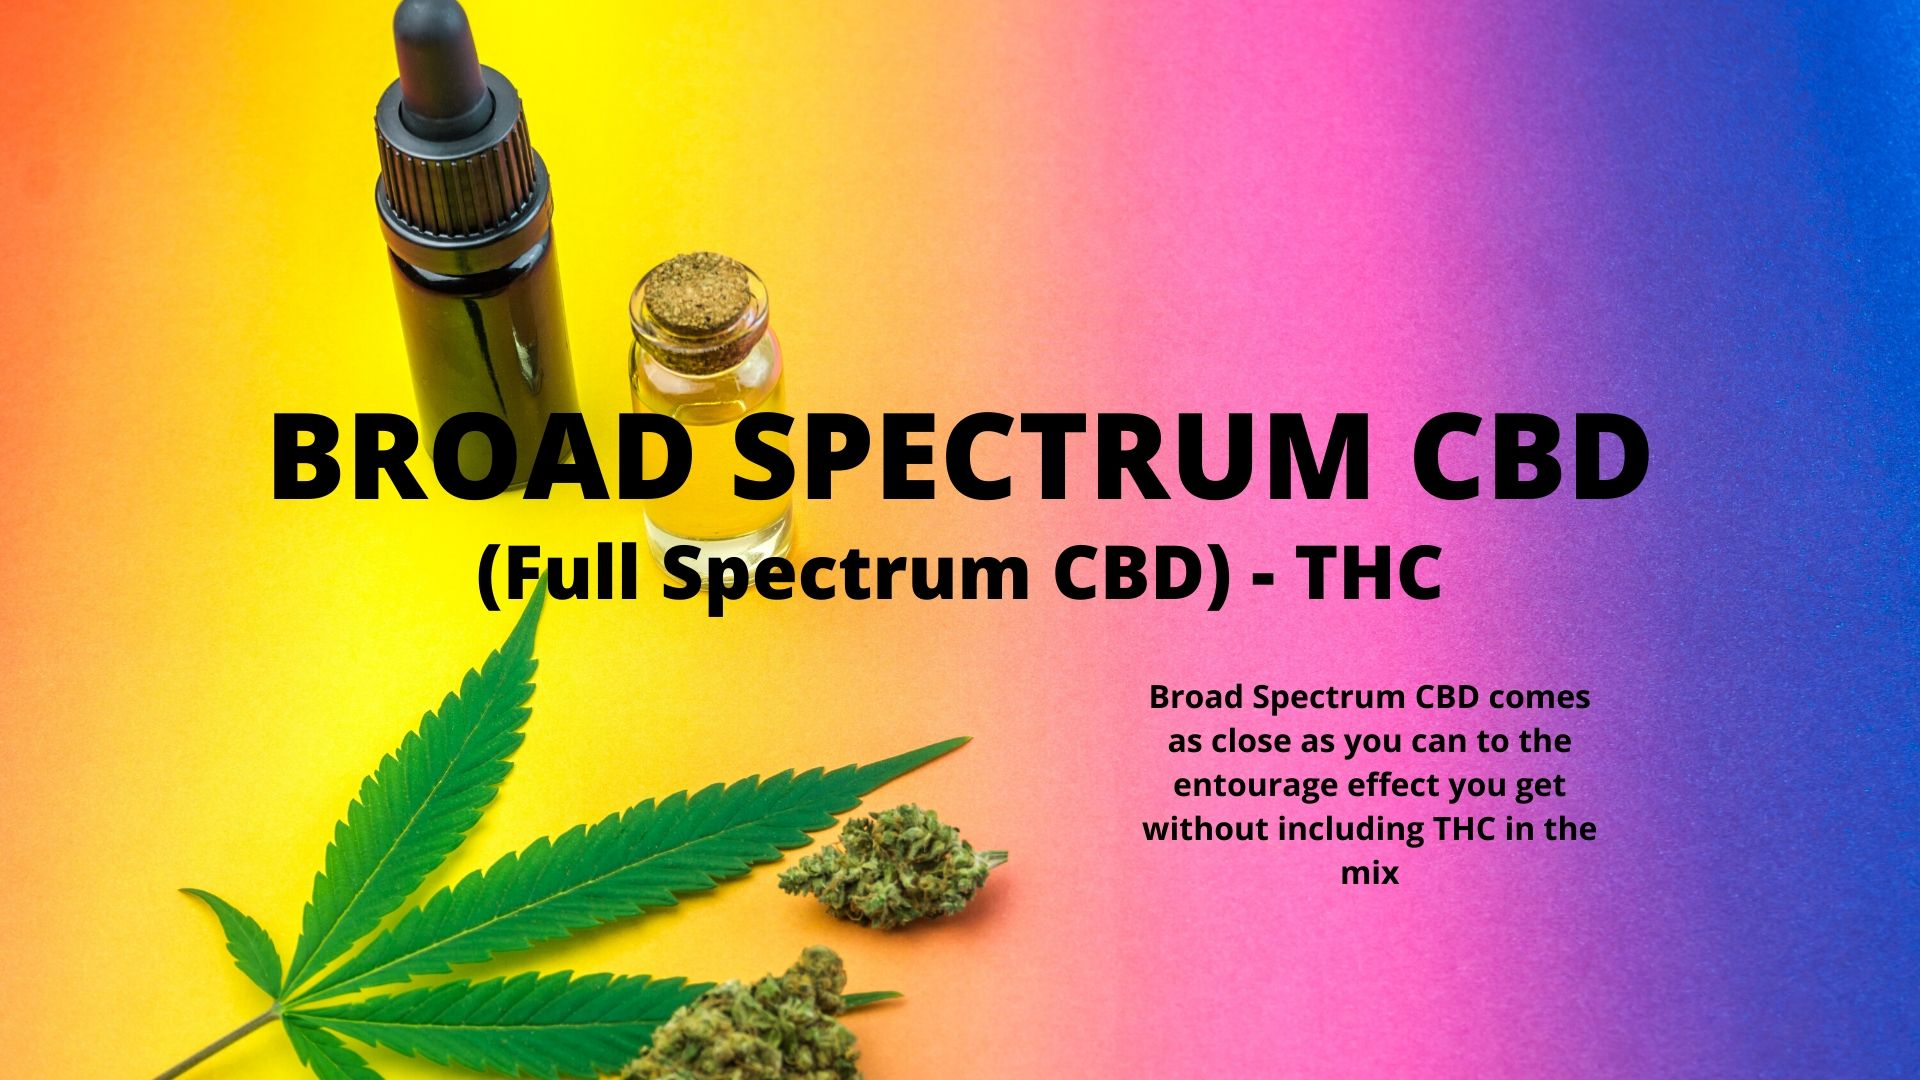 Broad Spectrum CBD: Full Spectrum CBD - THC. Broad Spectrum comes as close as you can to the entourage effect without including THC in the mix.